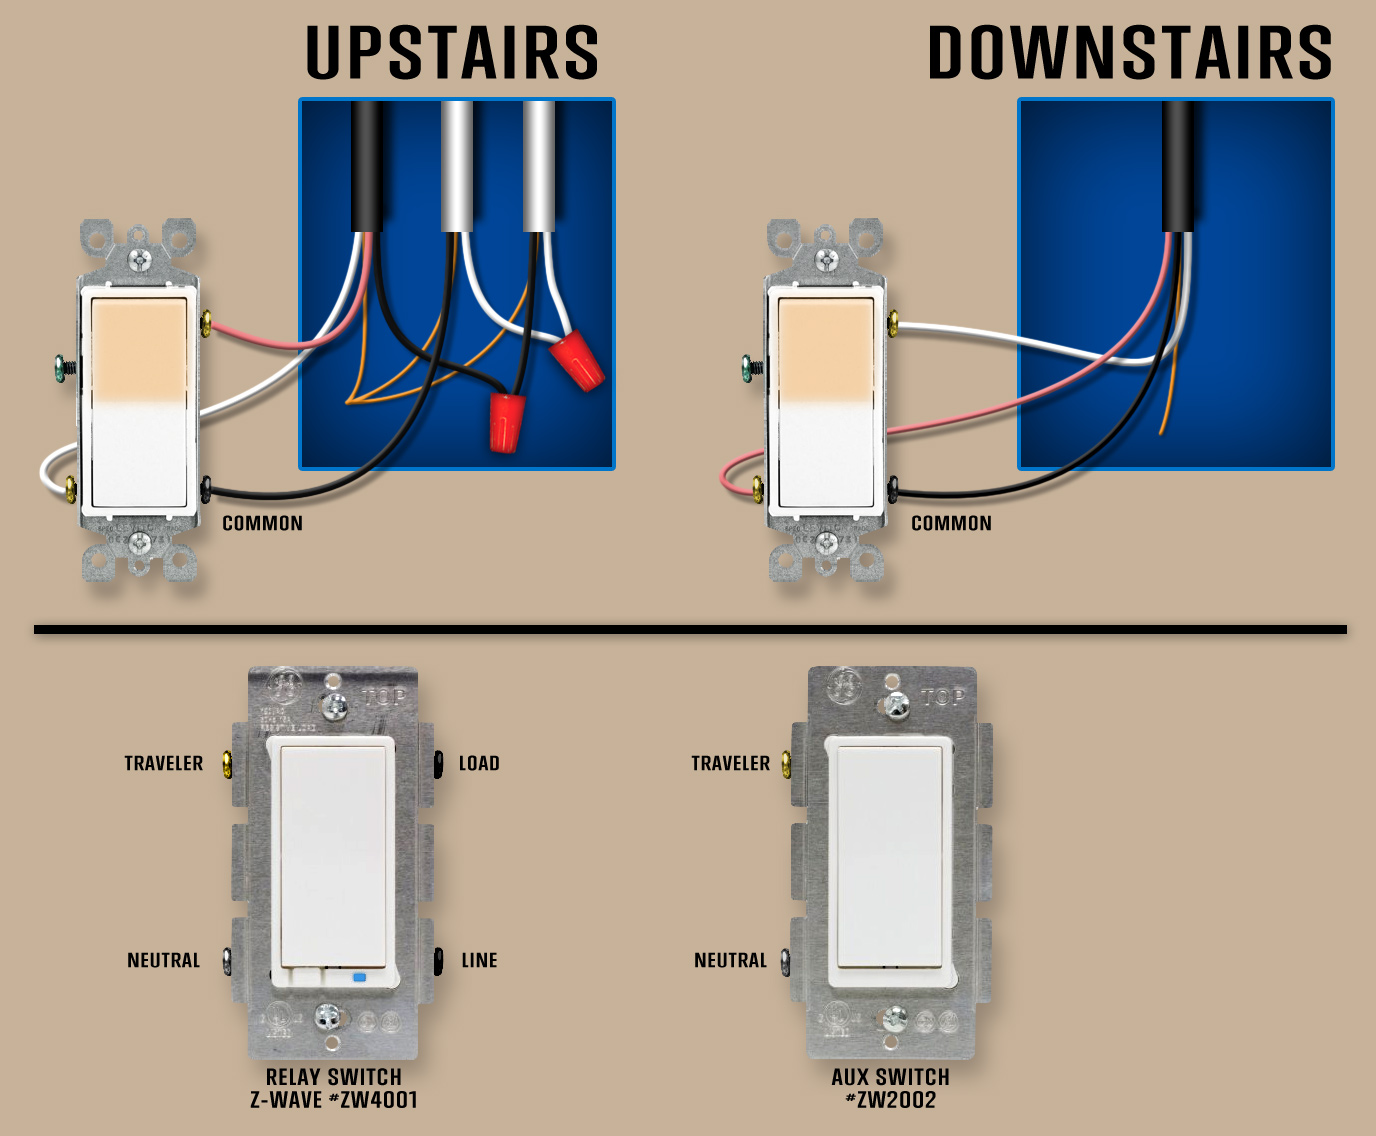 3 way switch wiring diagram power to light dodge neon radio electrical help home improvement stack